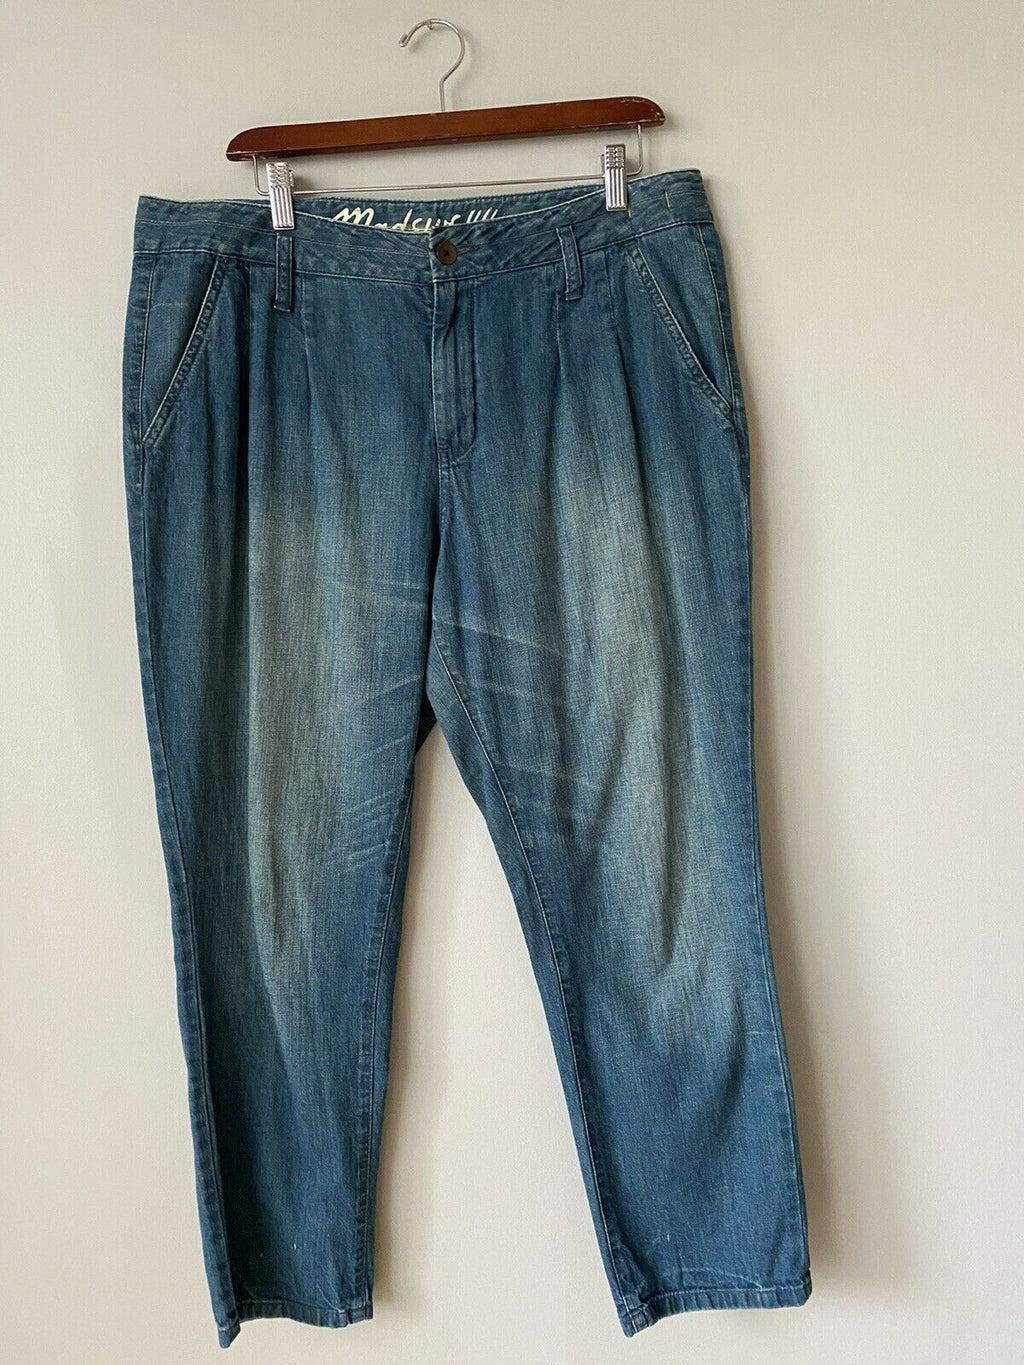 Madewell Women's Size 31 Jeans Tapered Leg Crop Denim Faded Slash Pocket Pleated